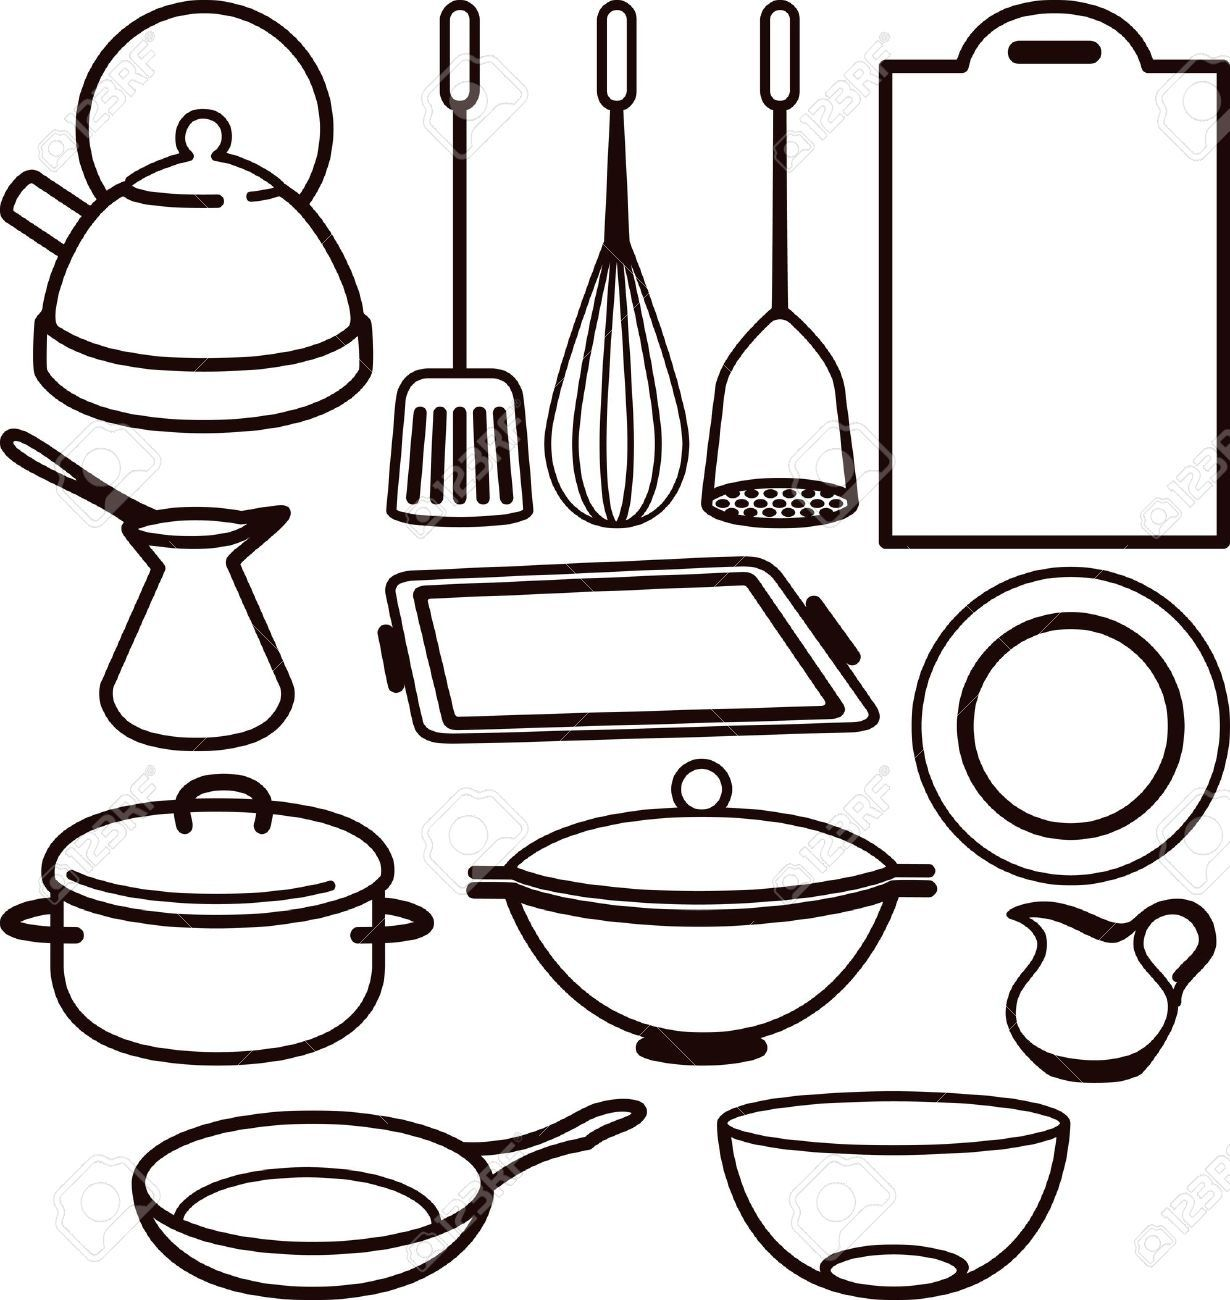 Best Of Cooking Utensil Clipart Black.